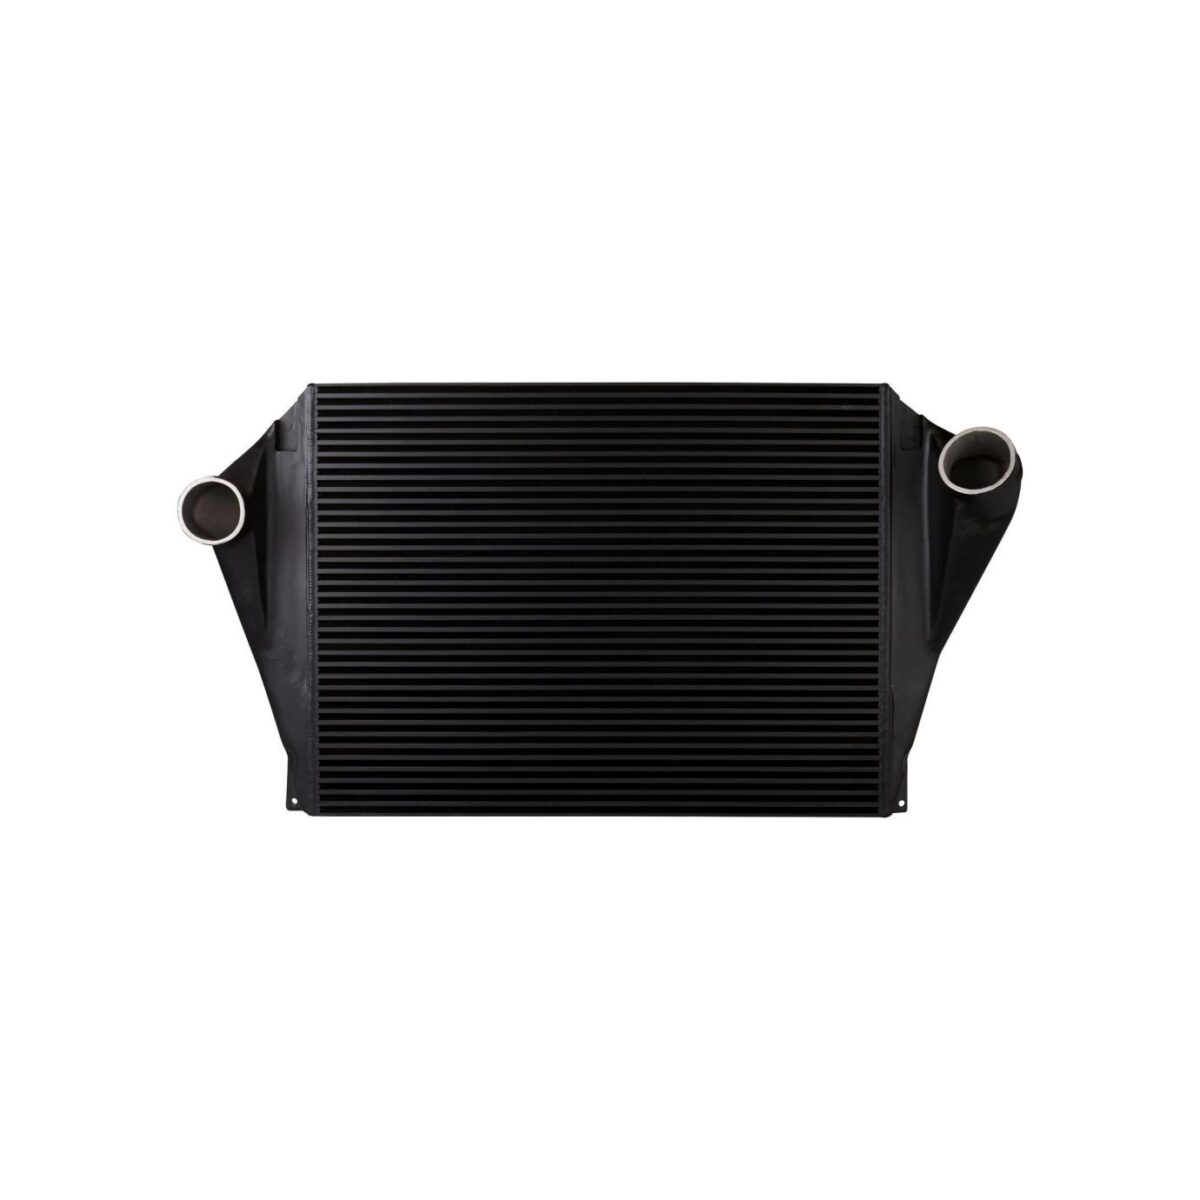 ford ford sterling 9000 9500 series 92 97 charge air cooler oem f4ht8009mb 5